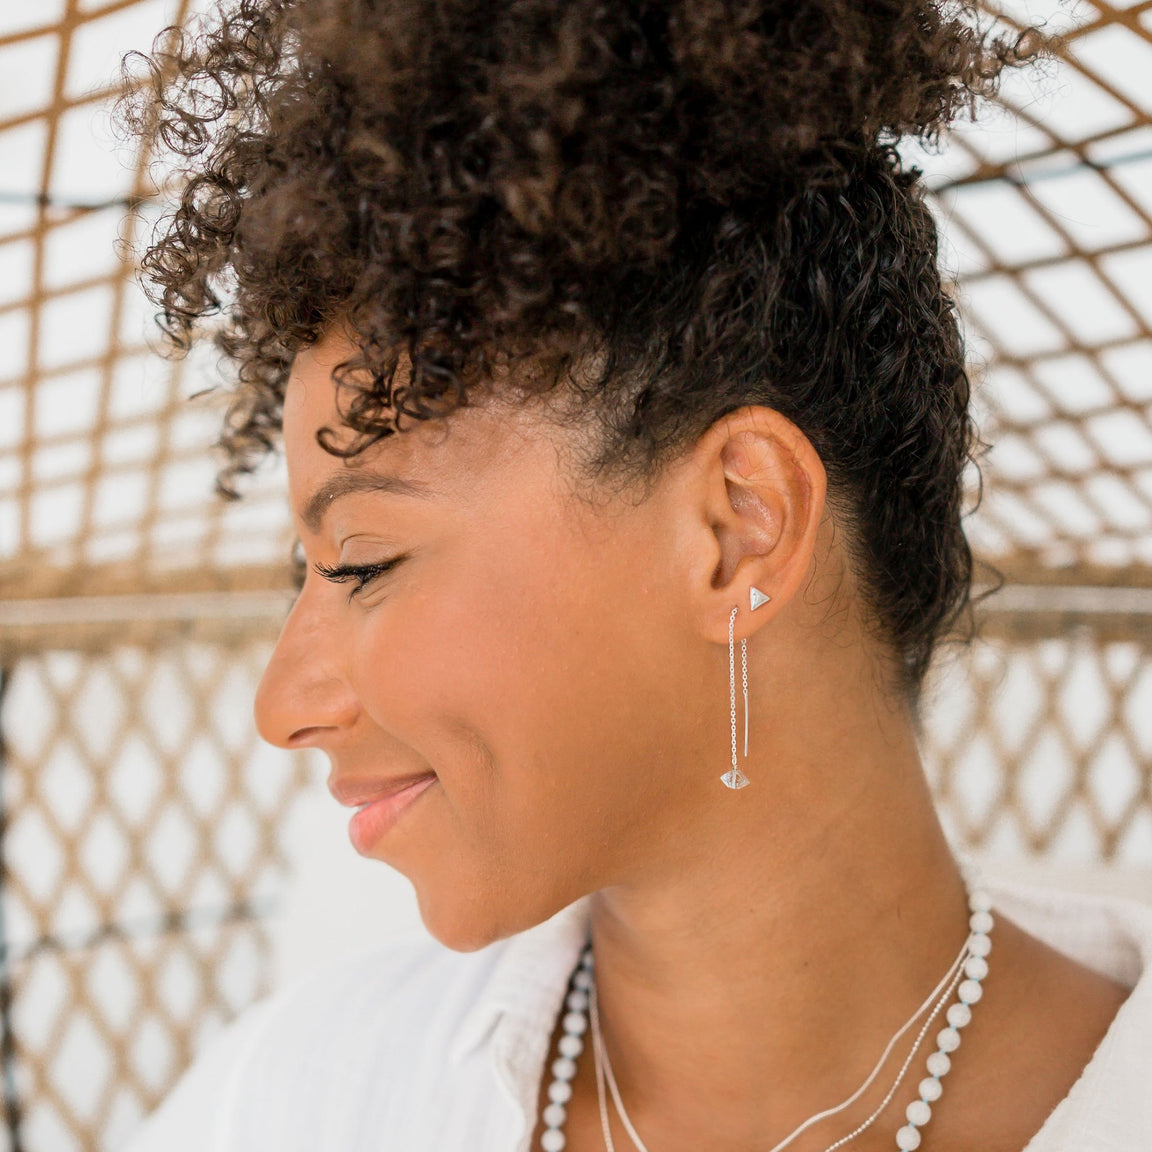 Tiny Stud Earrinngs - Gold Moon and Star Studs - Blooming Lotus Jewelry